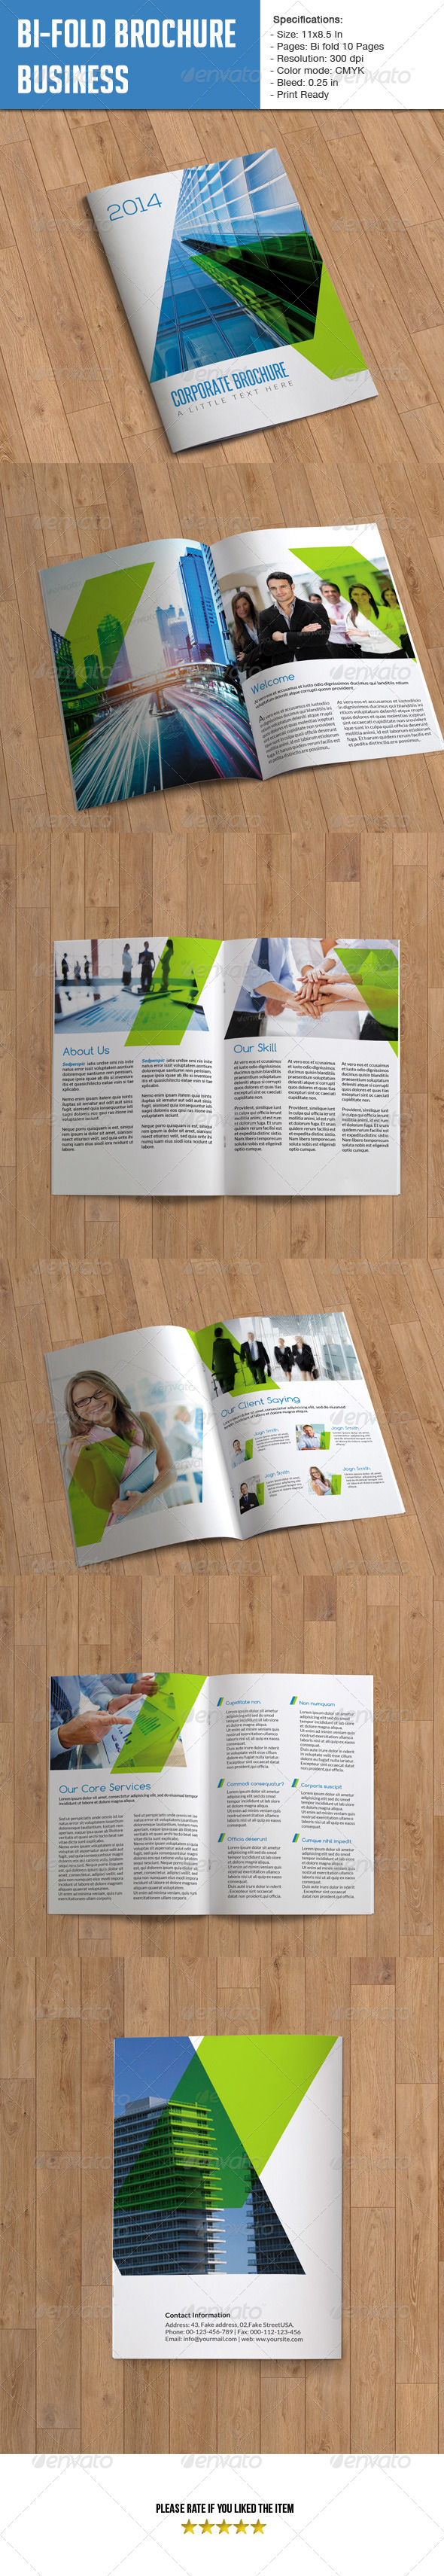 Bifold Brochure for Business- 10 Pages - Corporate Brochures